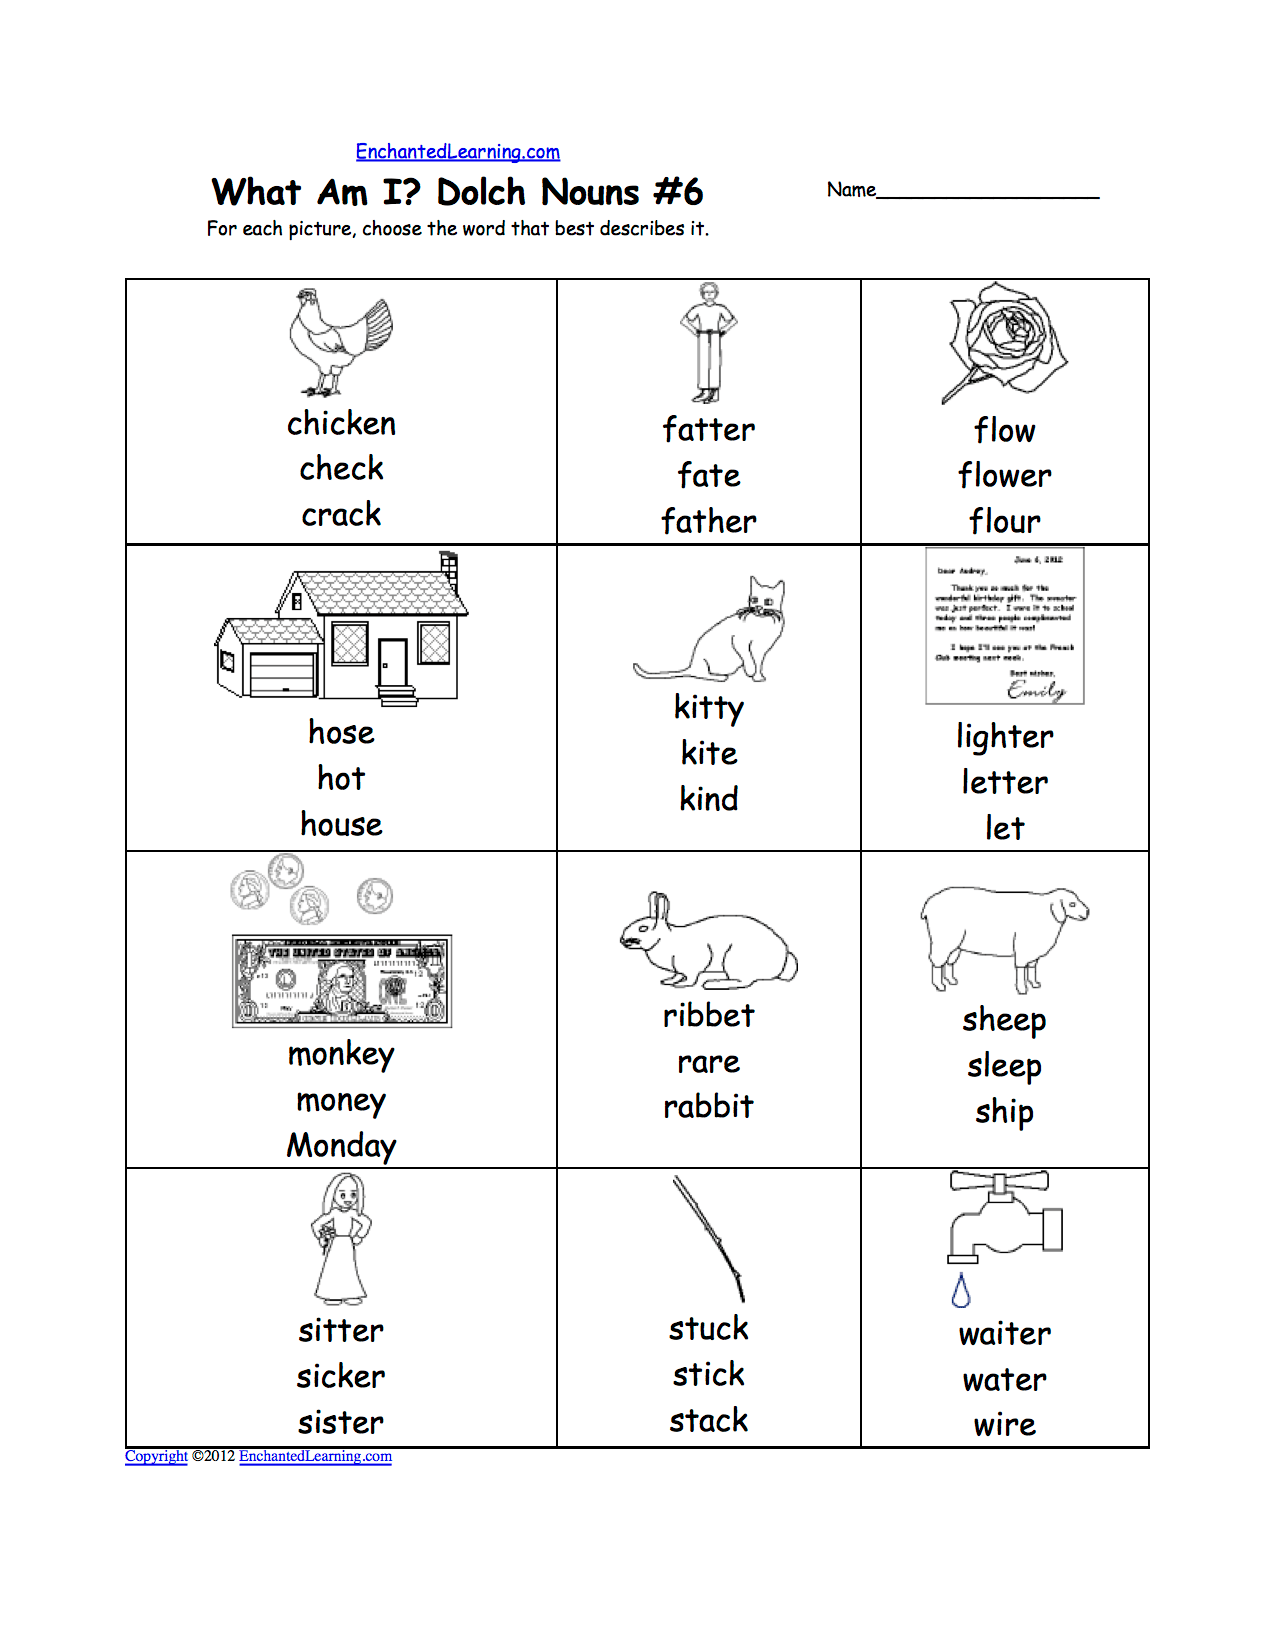 What Am I Dolch Nouns Worksheet Printouts